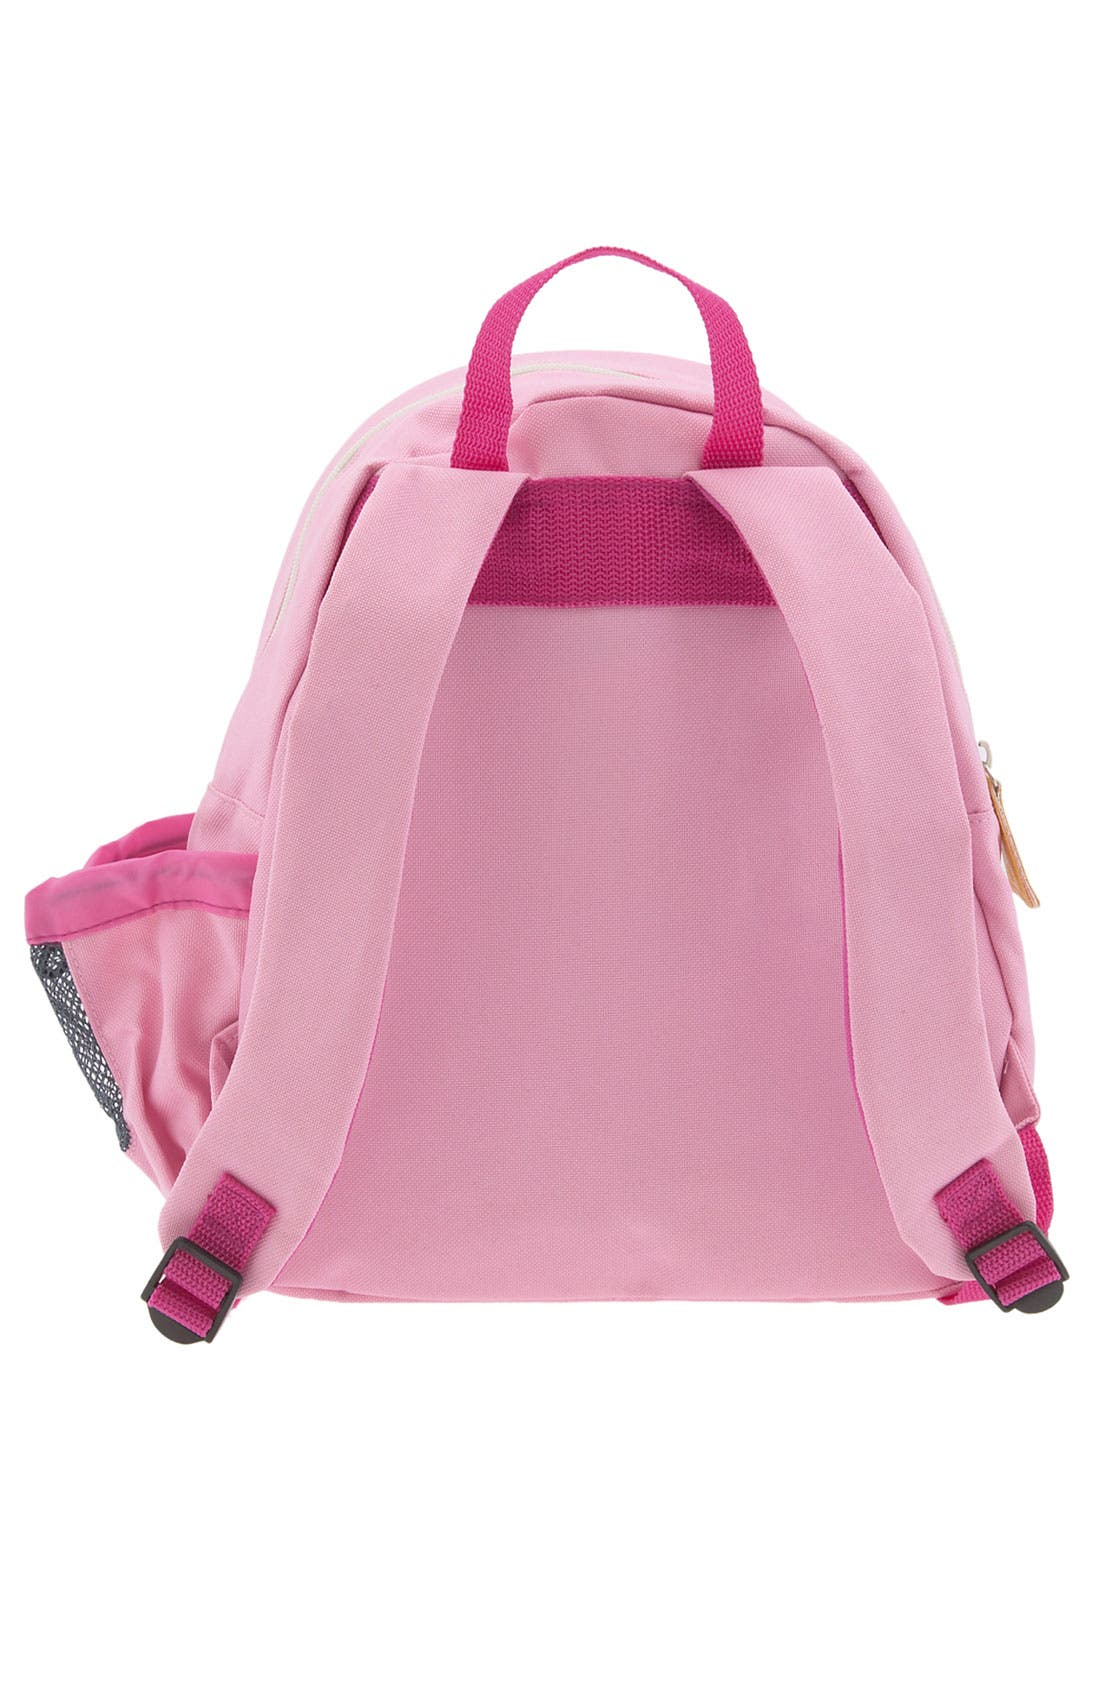 Zoo Pack Backpack,                             Alternate thumbnail 58, color,